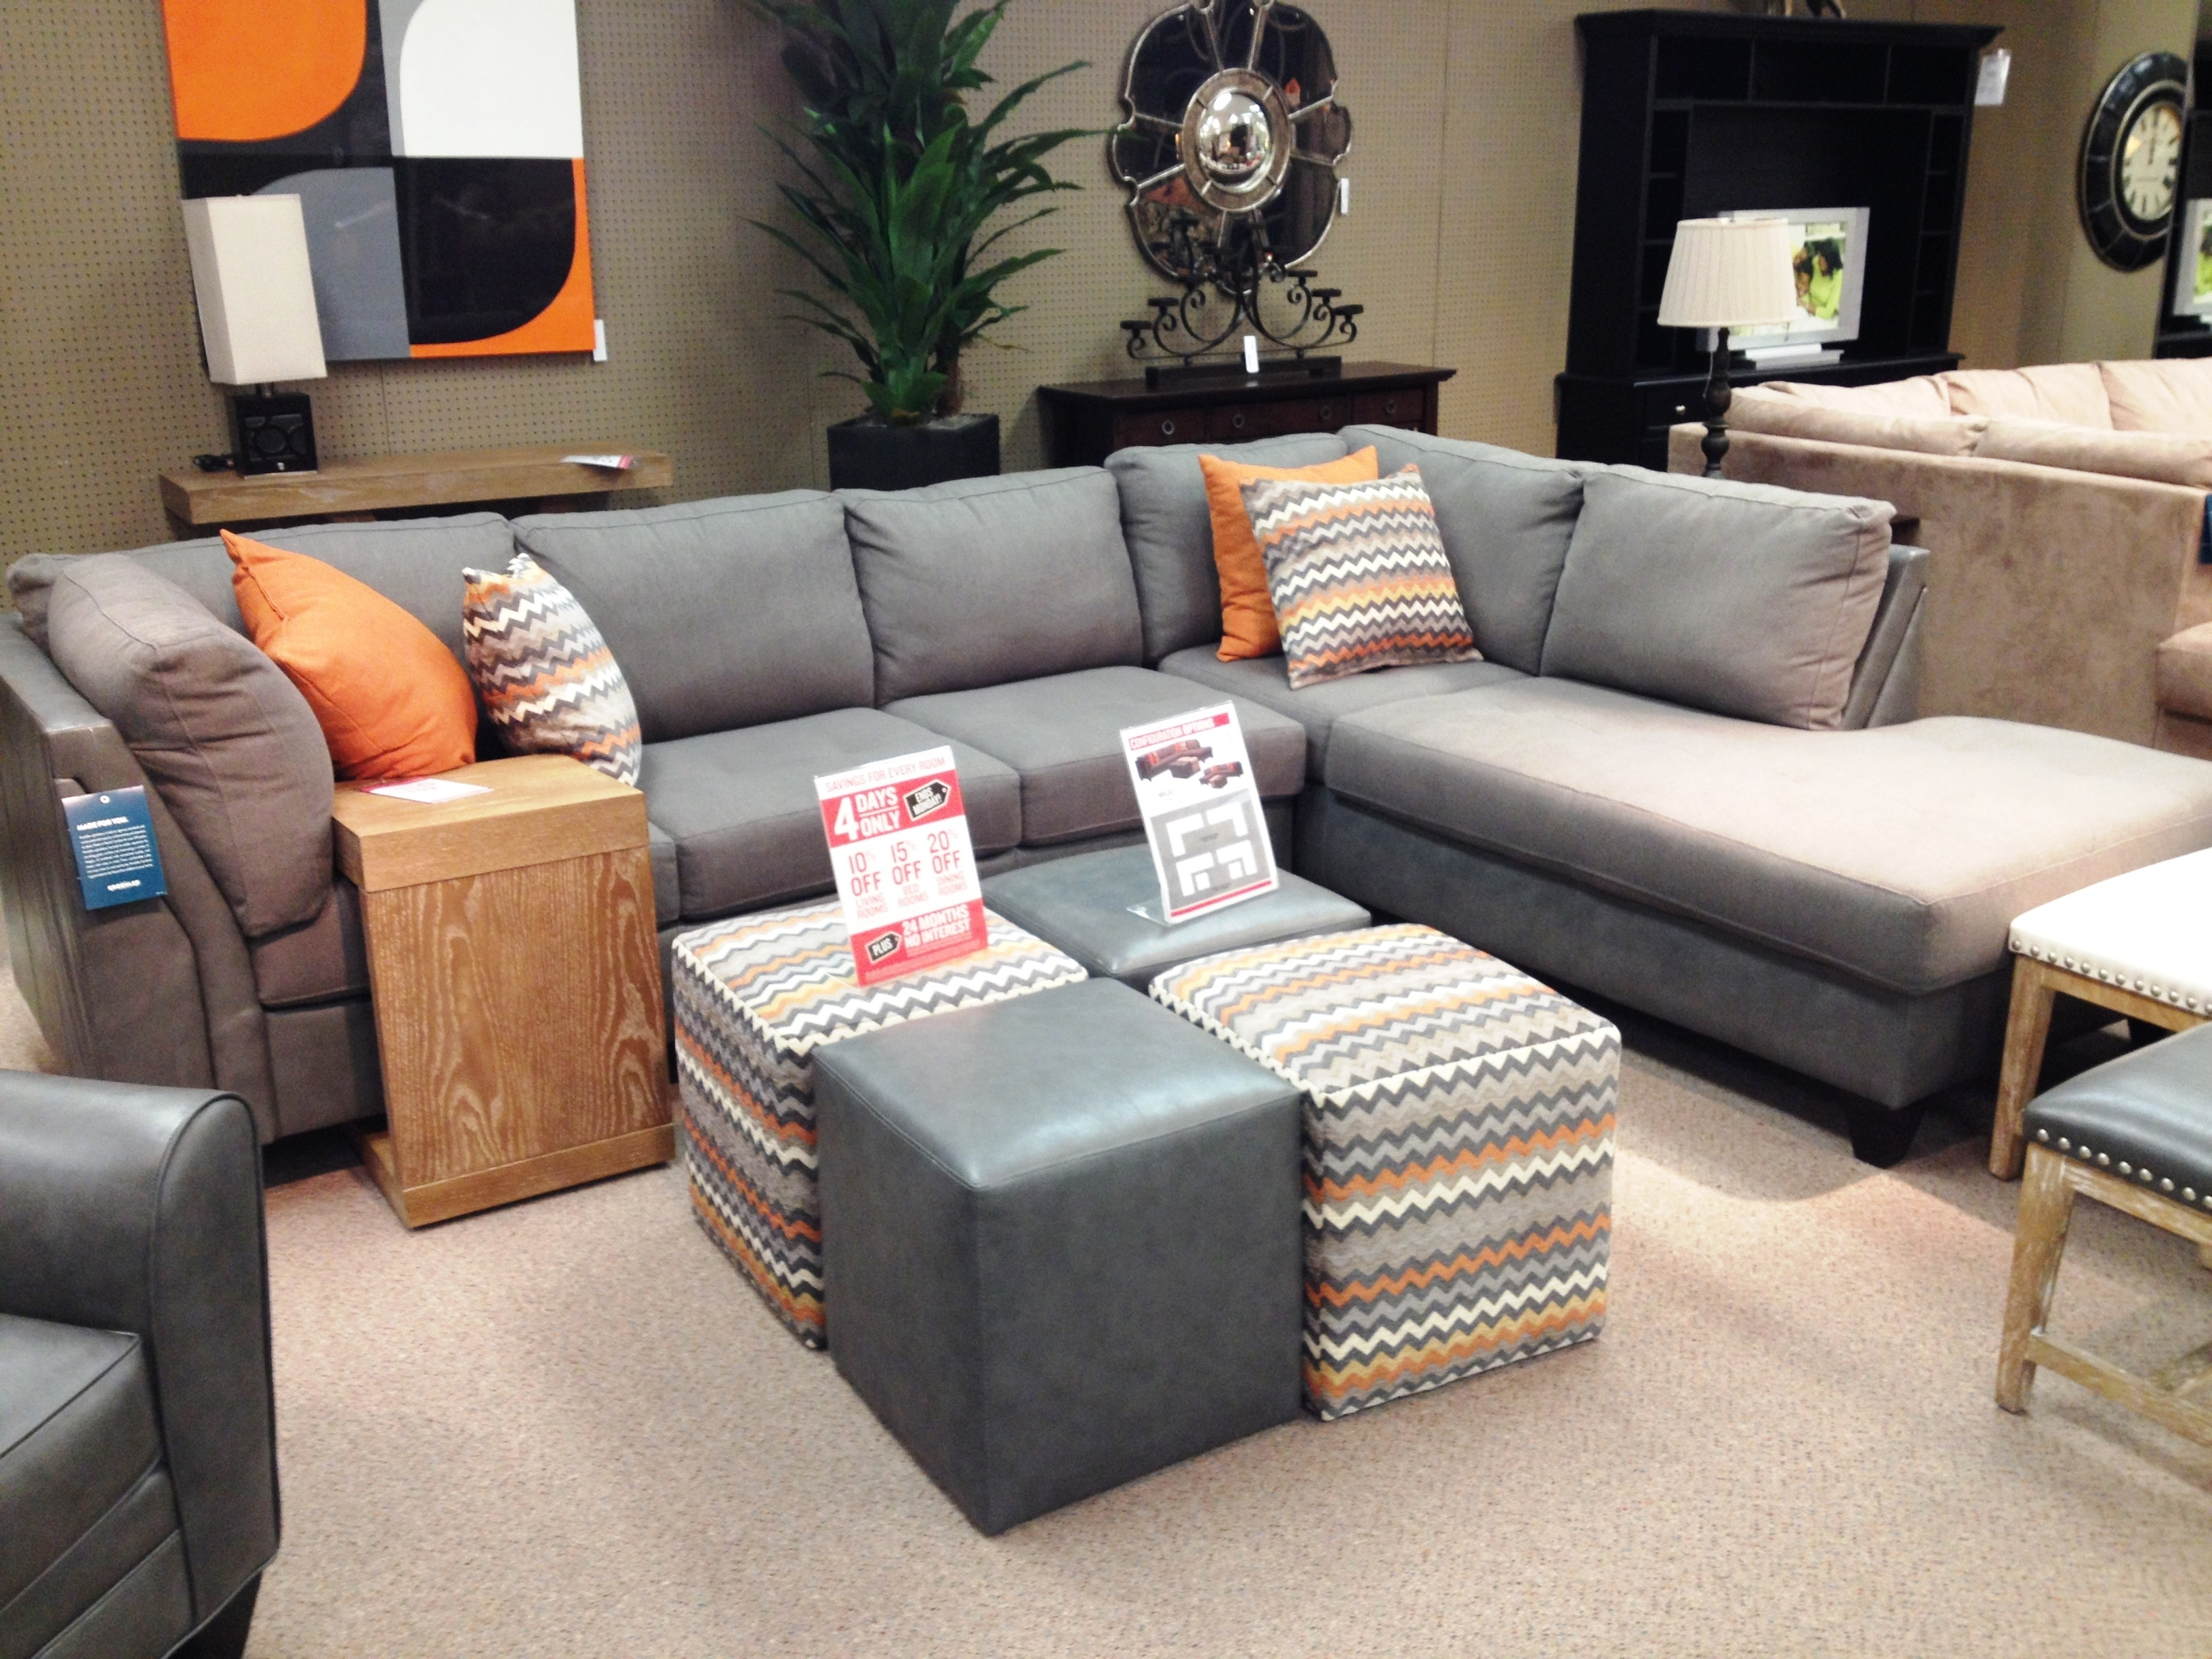 The Sectional Sofa Saga | Mid Century Modern(Ization) With Regard To Harper Down 3 Piece Sectionals (View 18 of 25)